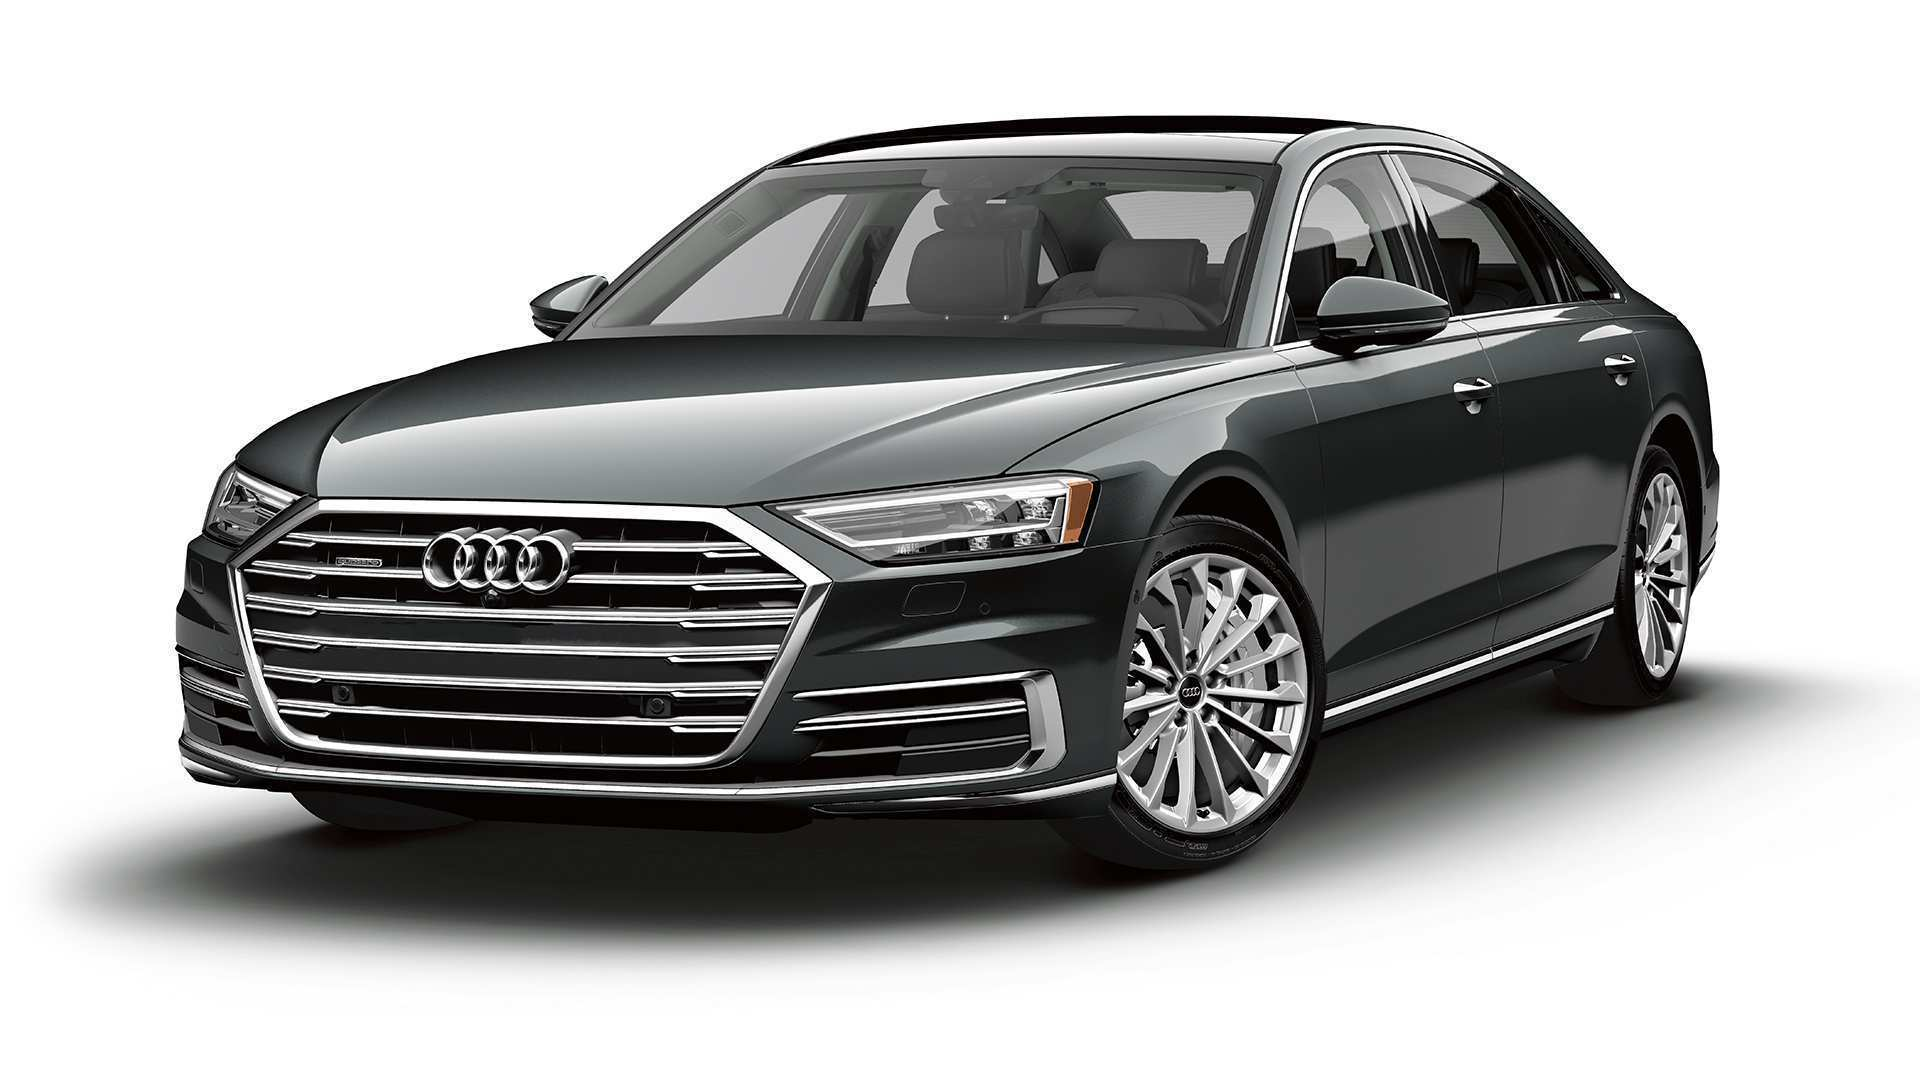 68 New 2019 Audi A8 Photos Rumors for 2019 Audi A8 Photos